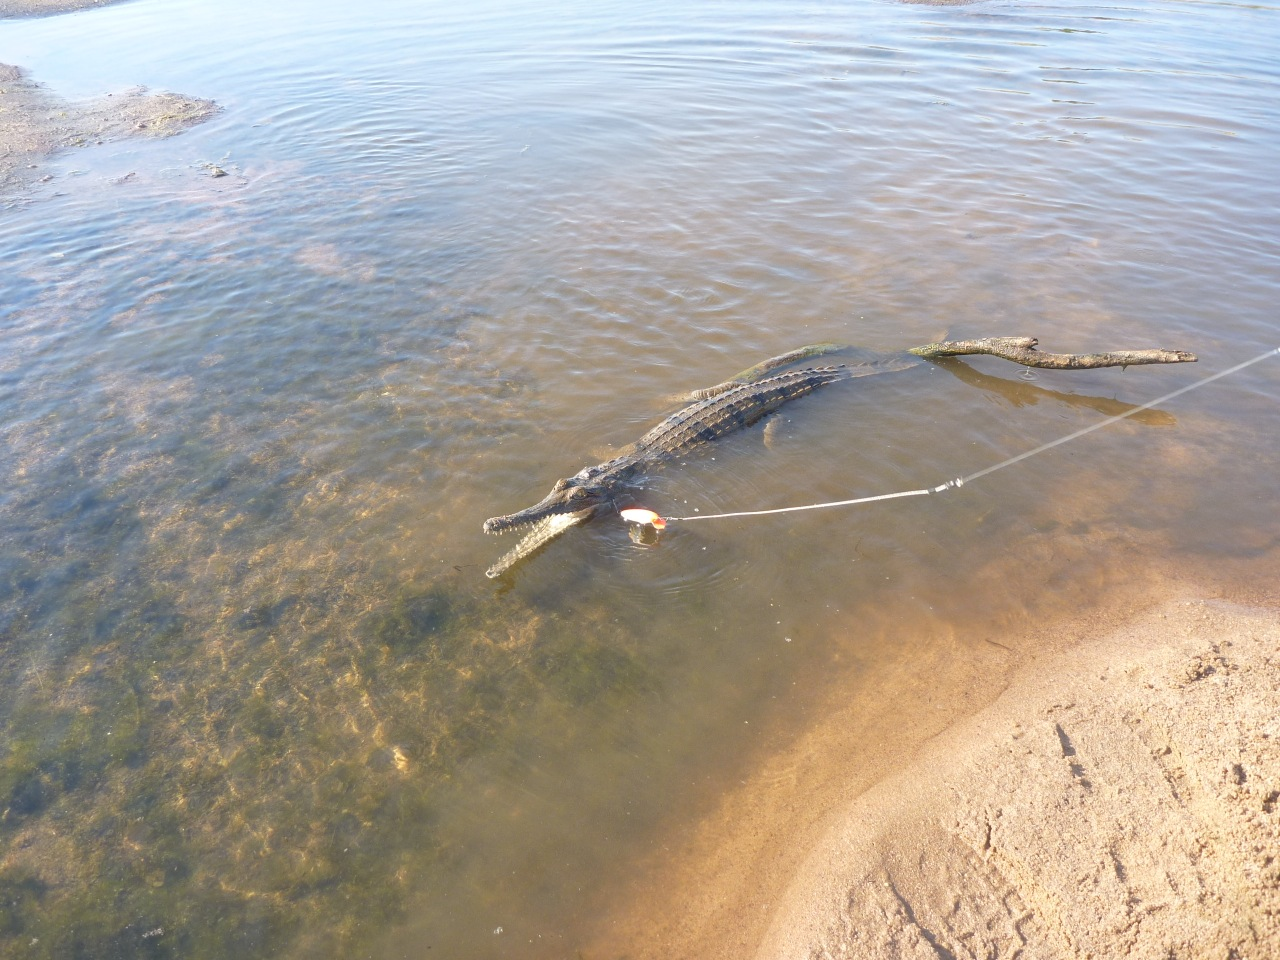 Catching a crocodile with a fishing line